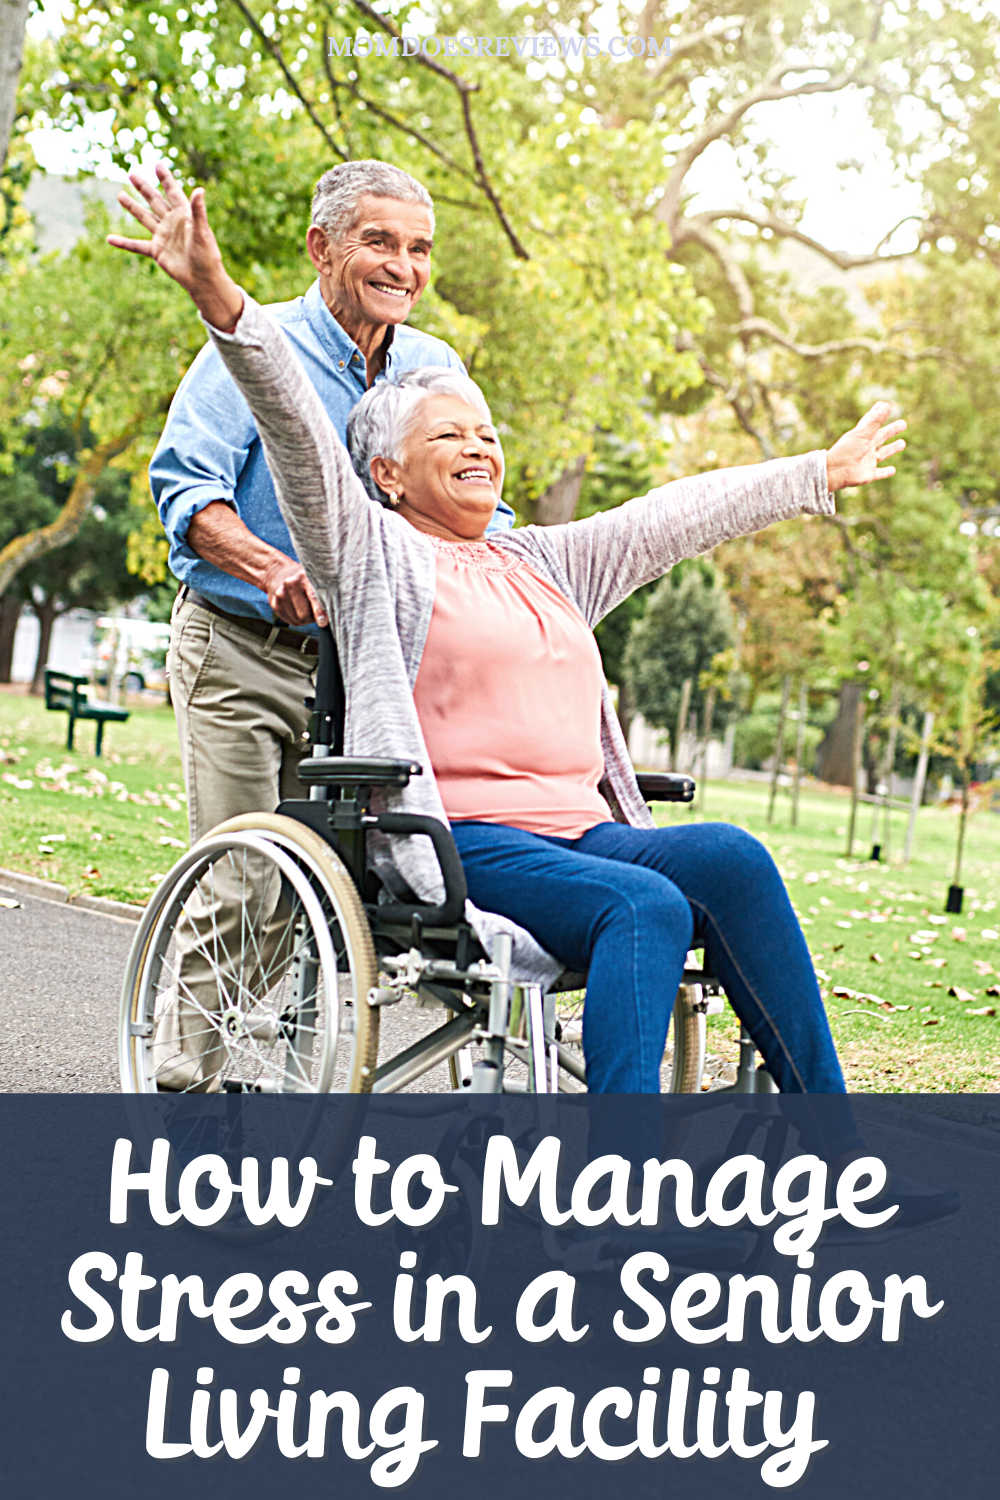 5 Ways to Stay Stress-Free in a Senior Independent Living Facility